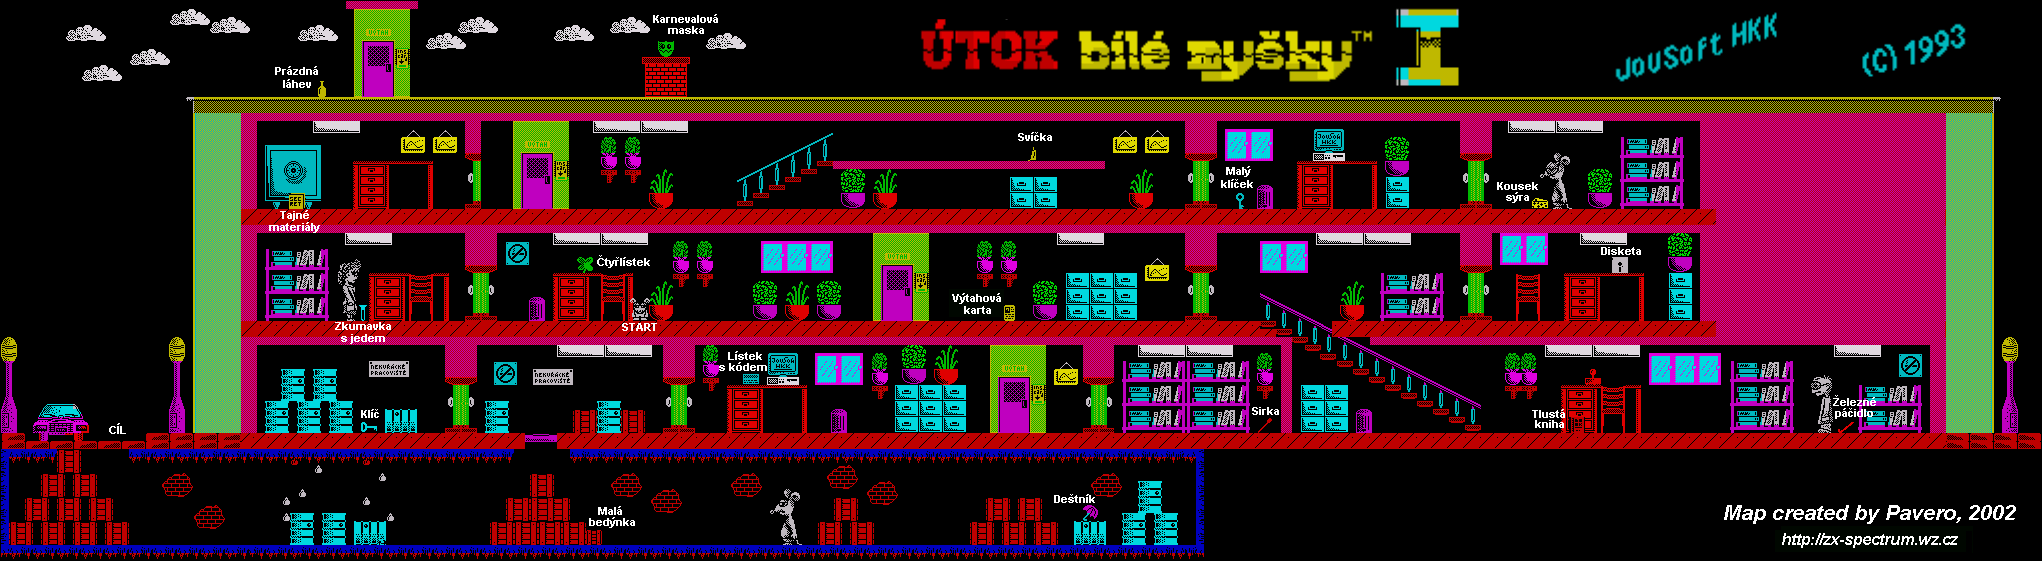 Utok bile mysky - The Map